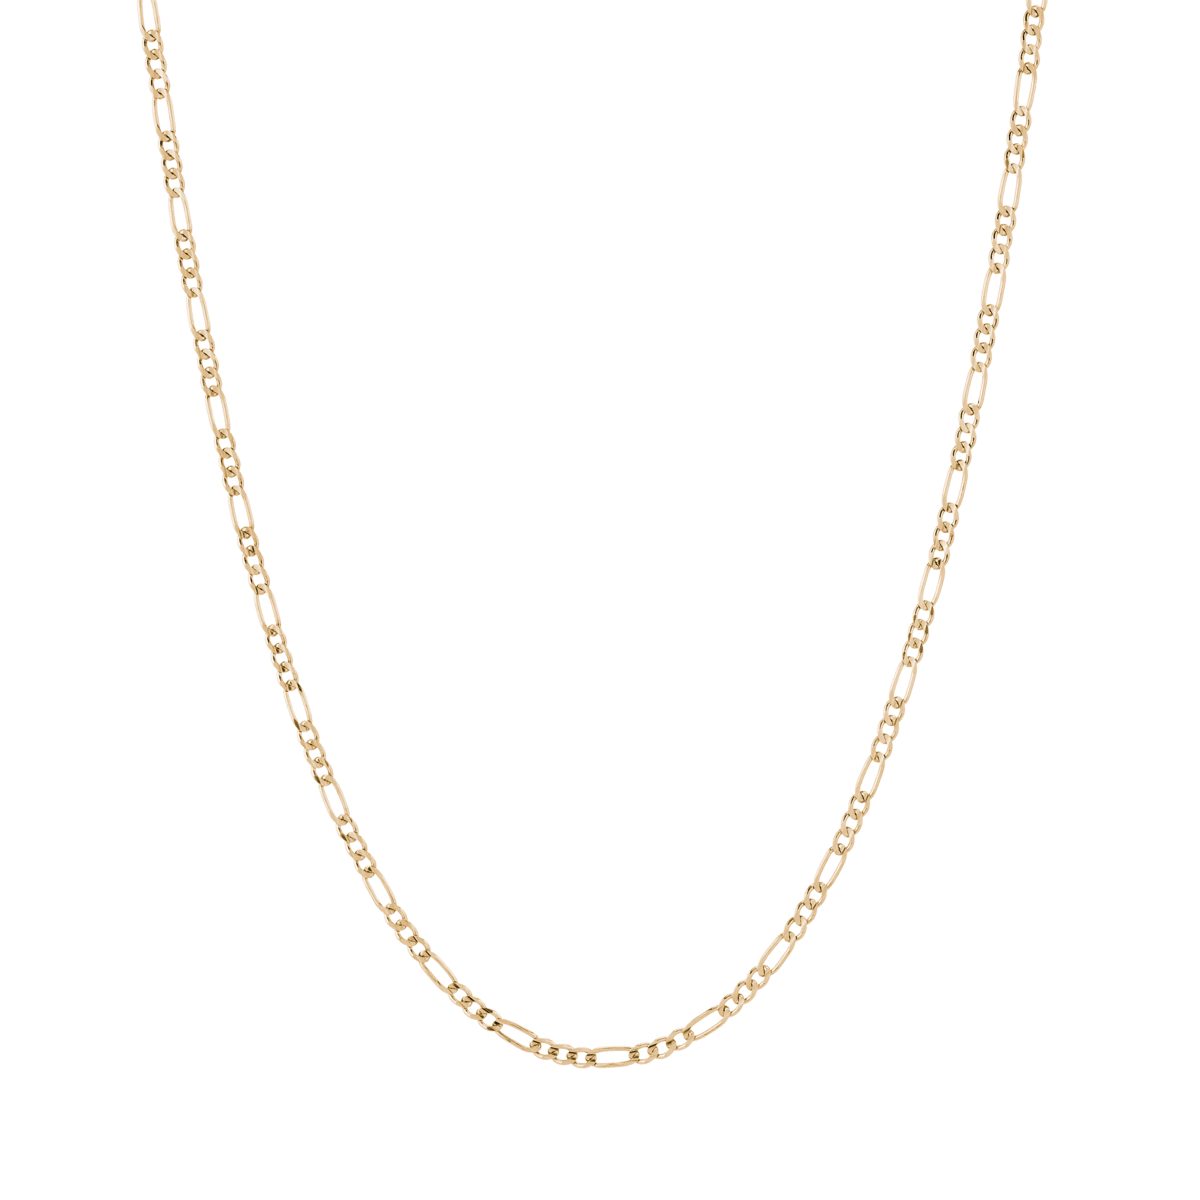 Medium Gold Figaro Chain Necklace